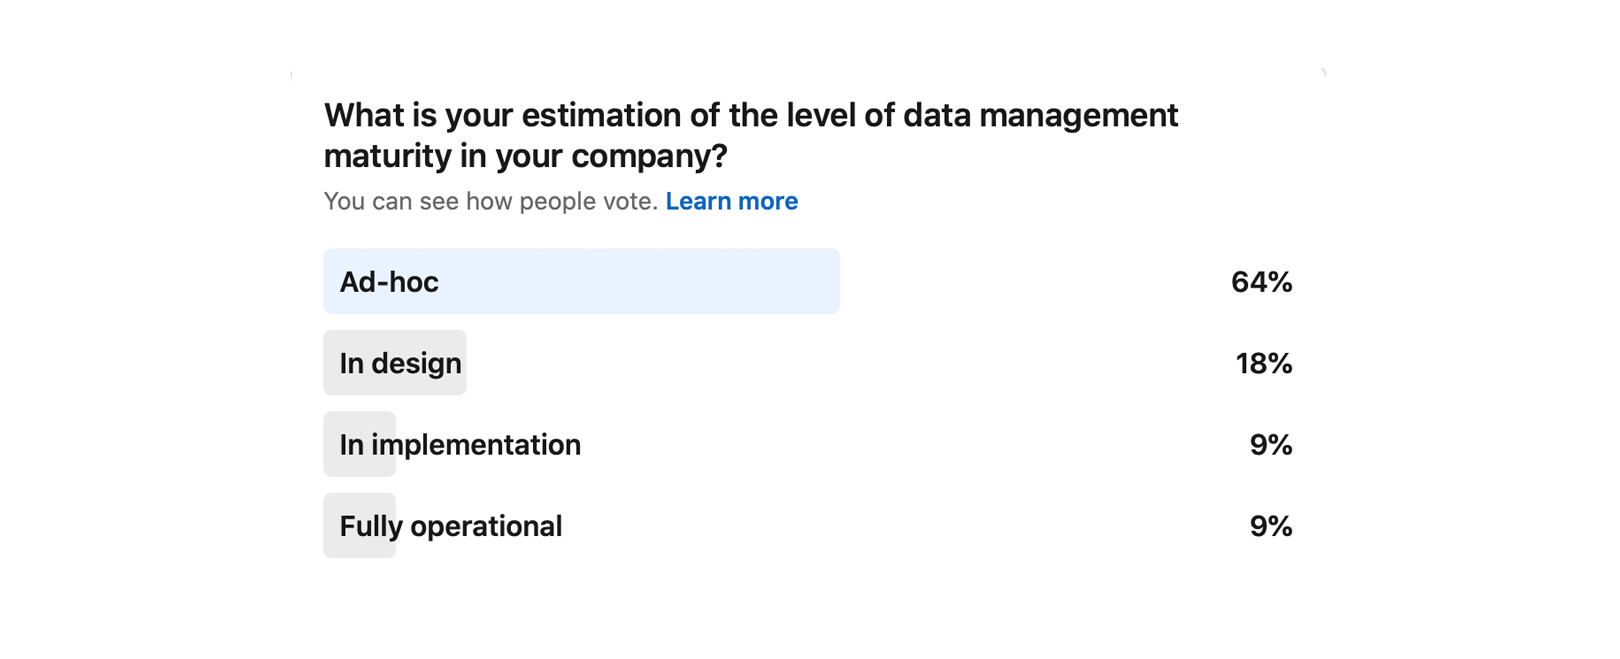 Data management maturity level